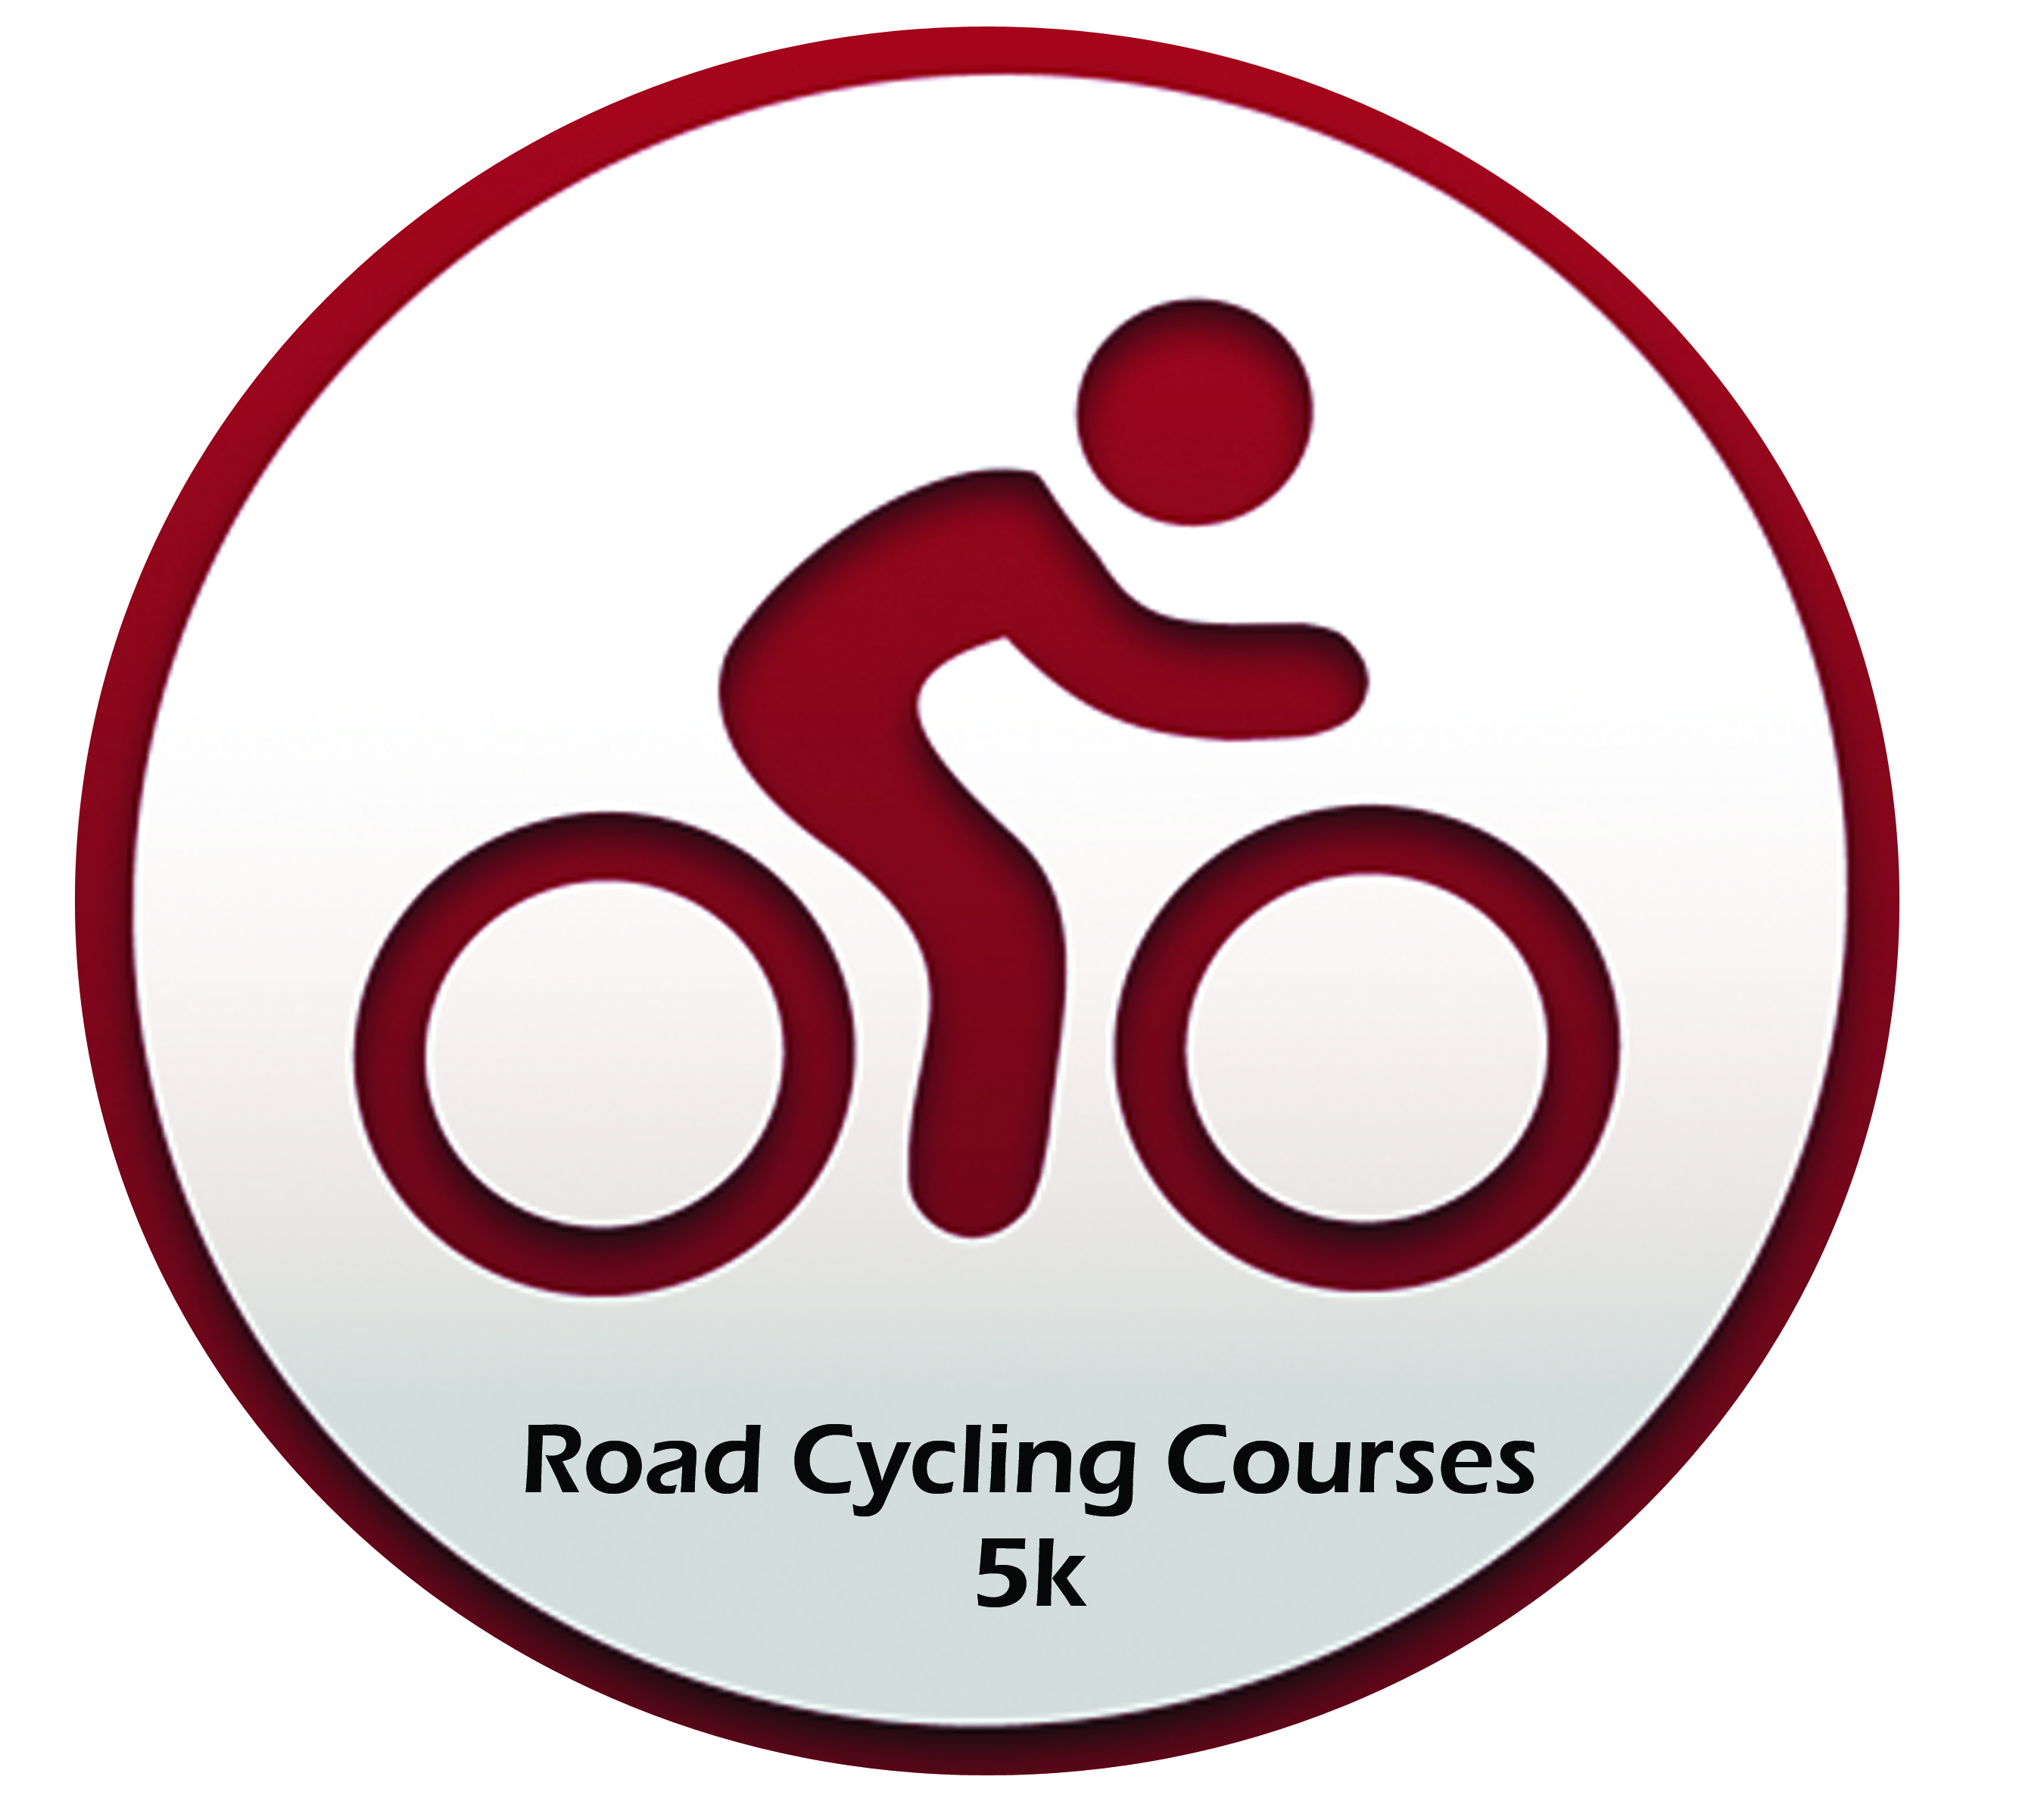 Road Cycling Course-5k.jpg